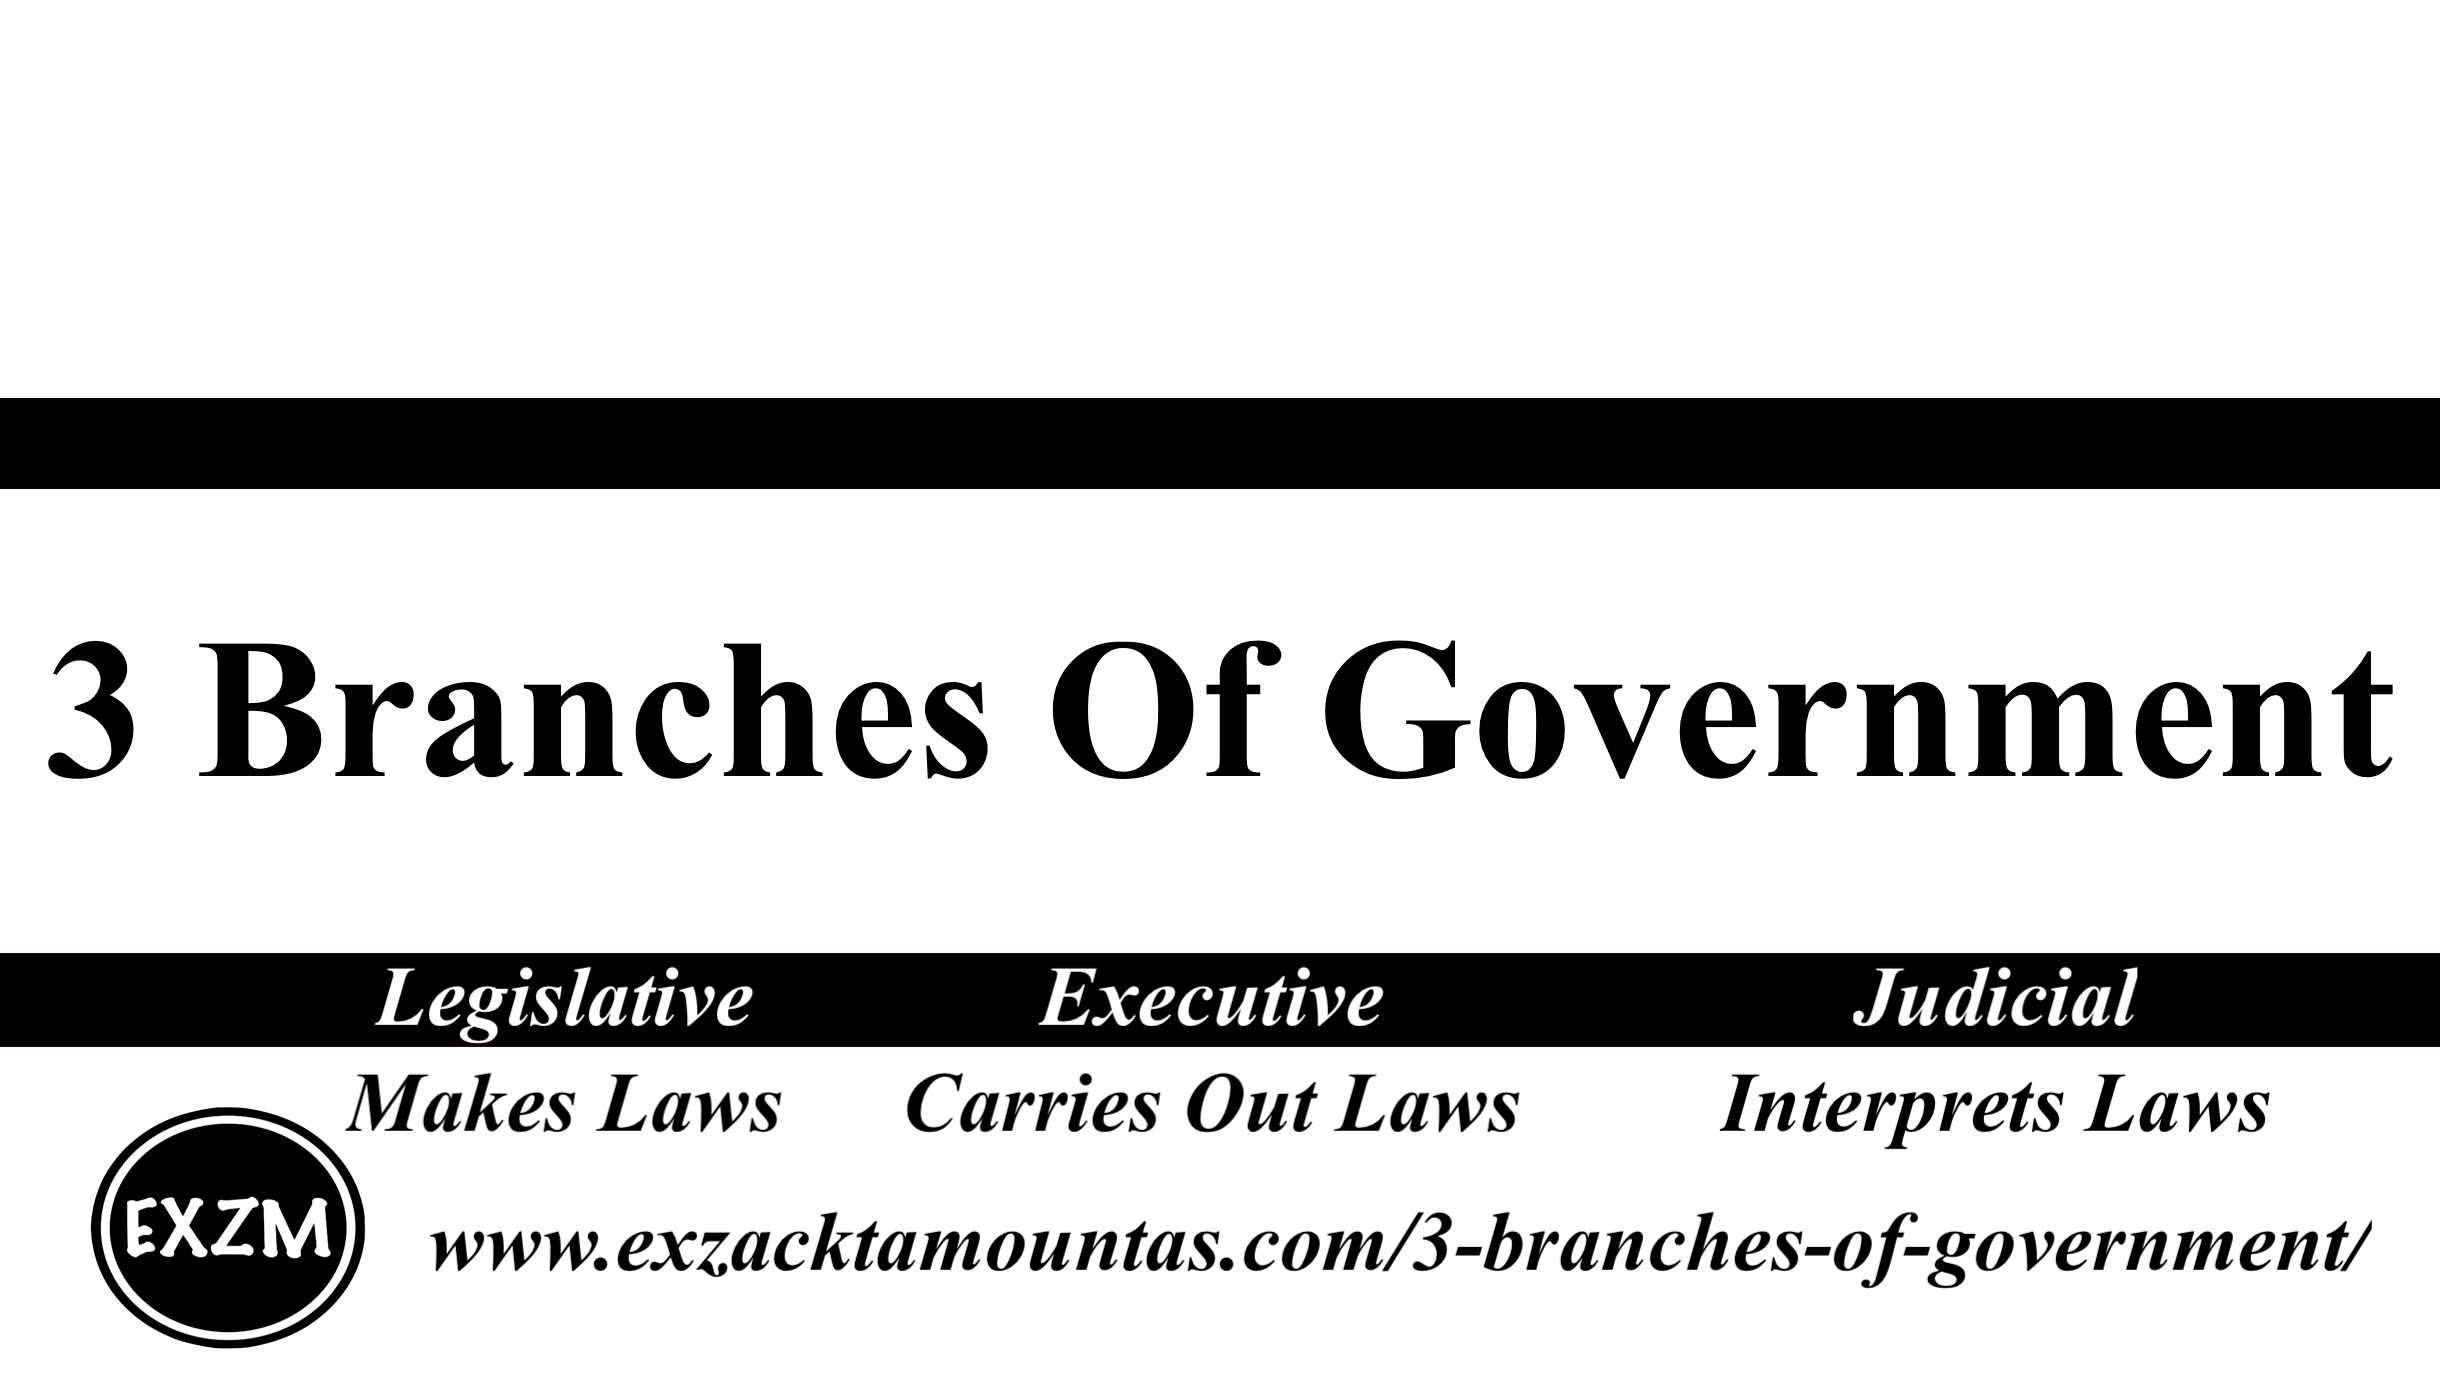 3 Branches Of Government EXZM 11 5 2019